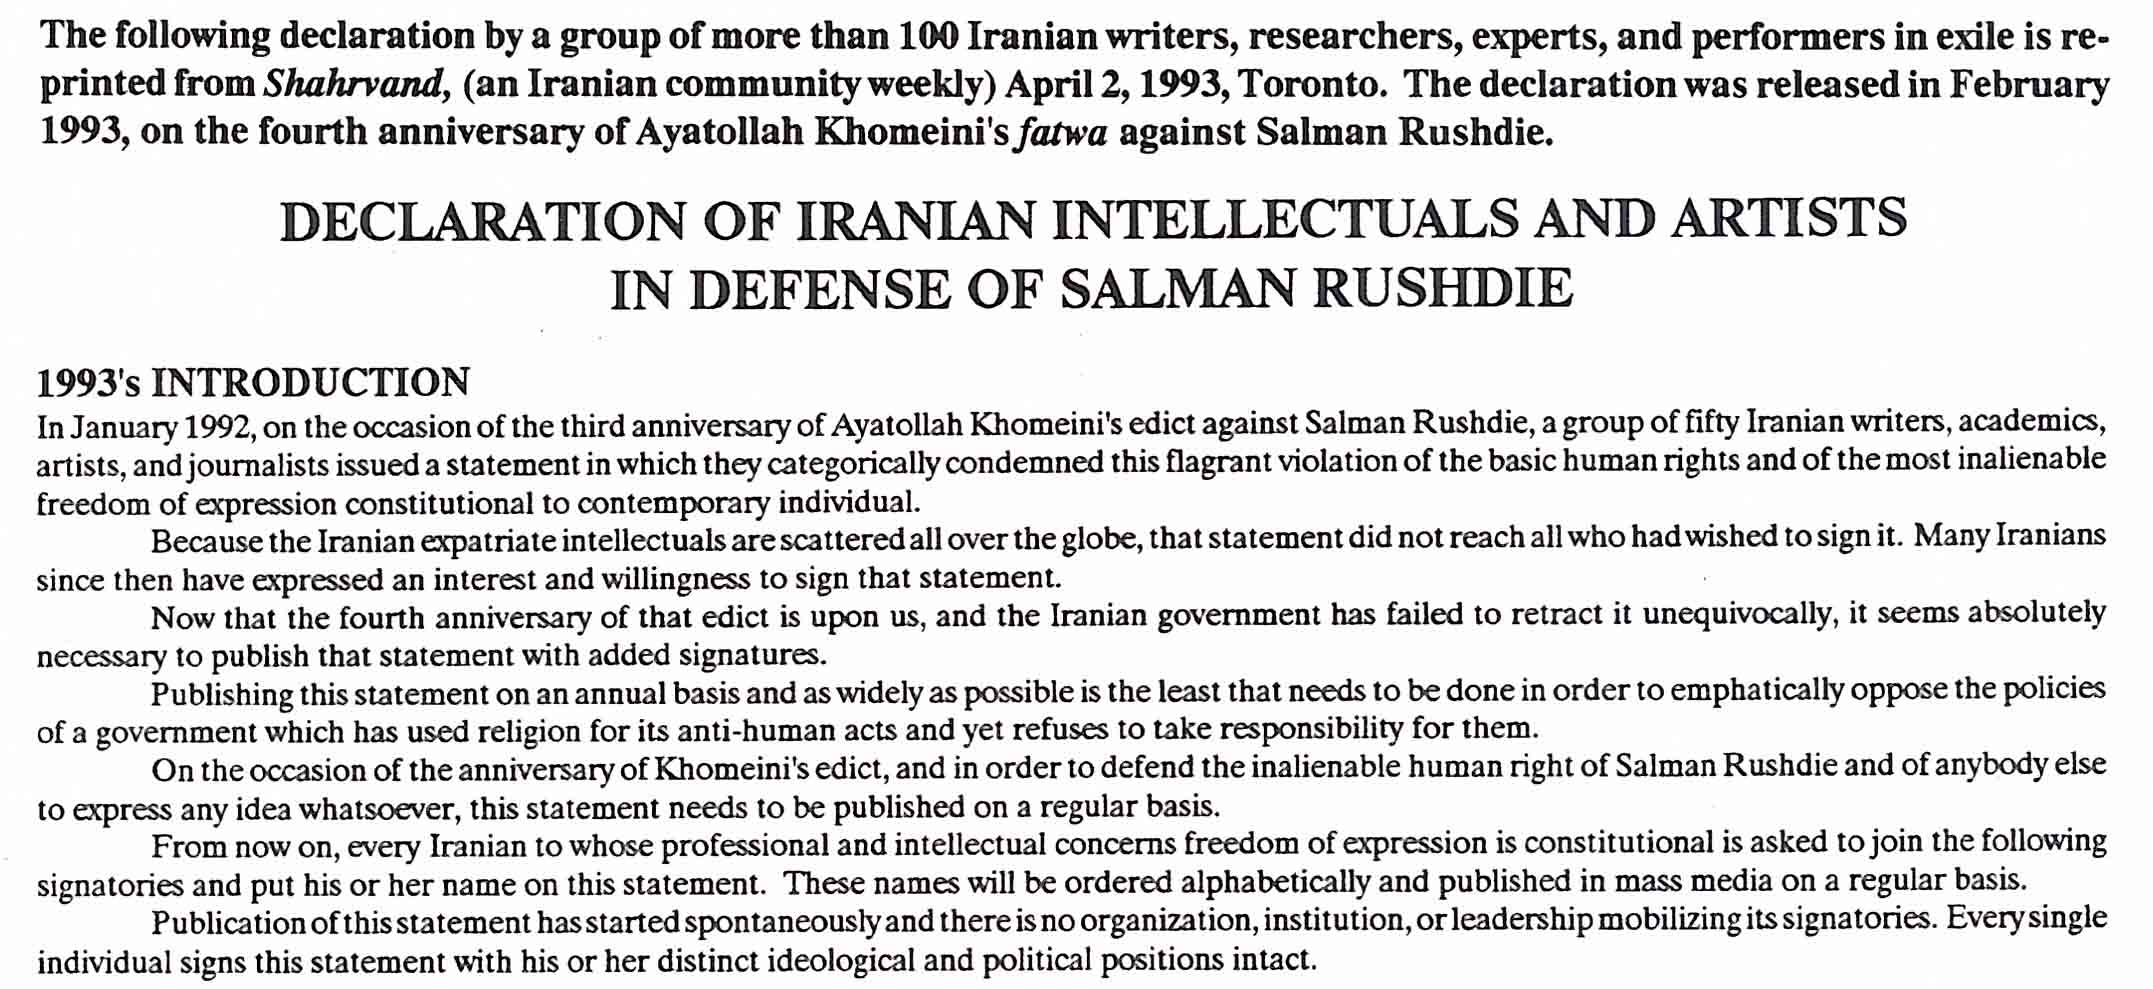 Iranian declaration in support of Salman Rushdie